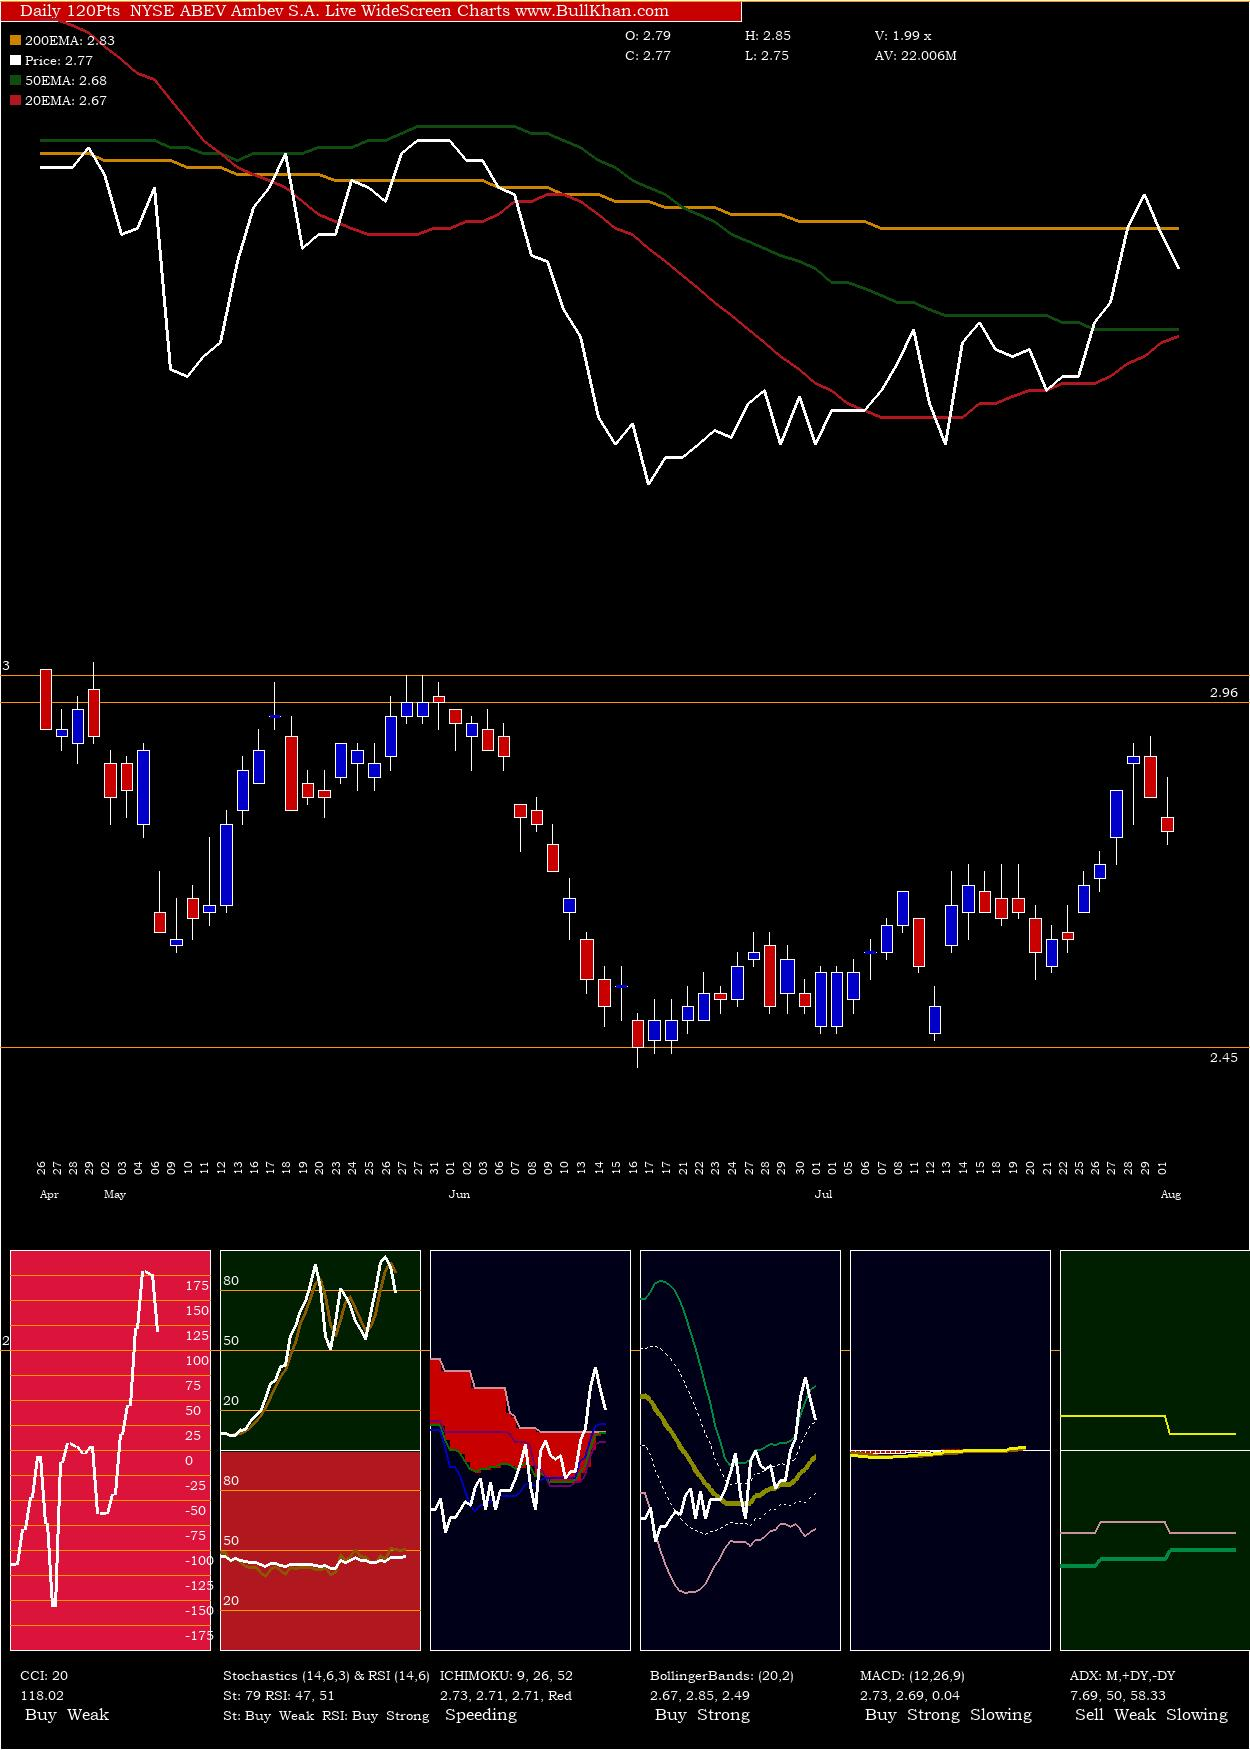 Ambev S charts and indicators